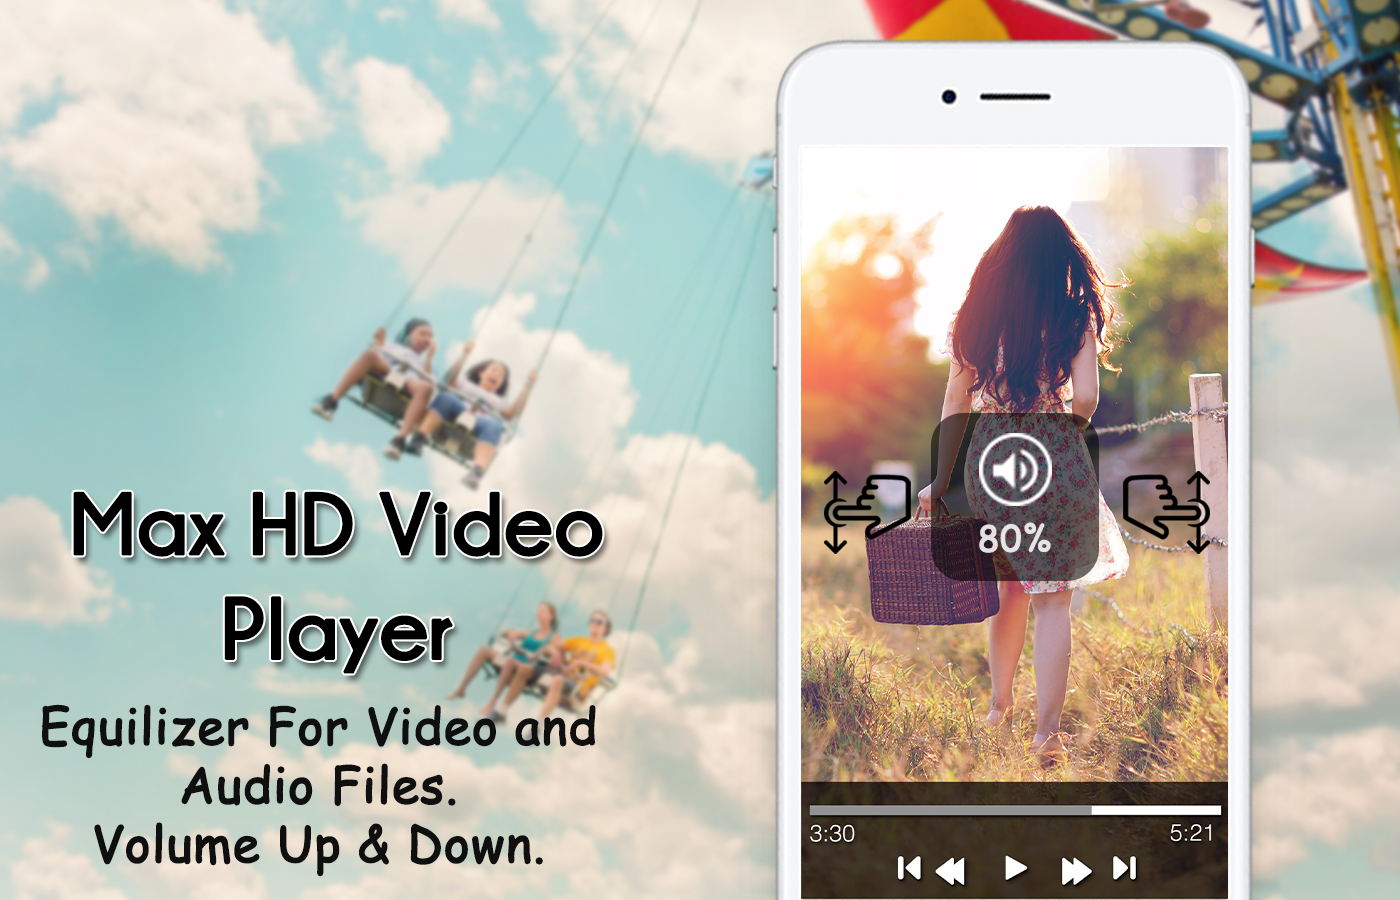 Max HD Video Player 1 0 2 APK Download - Android cats